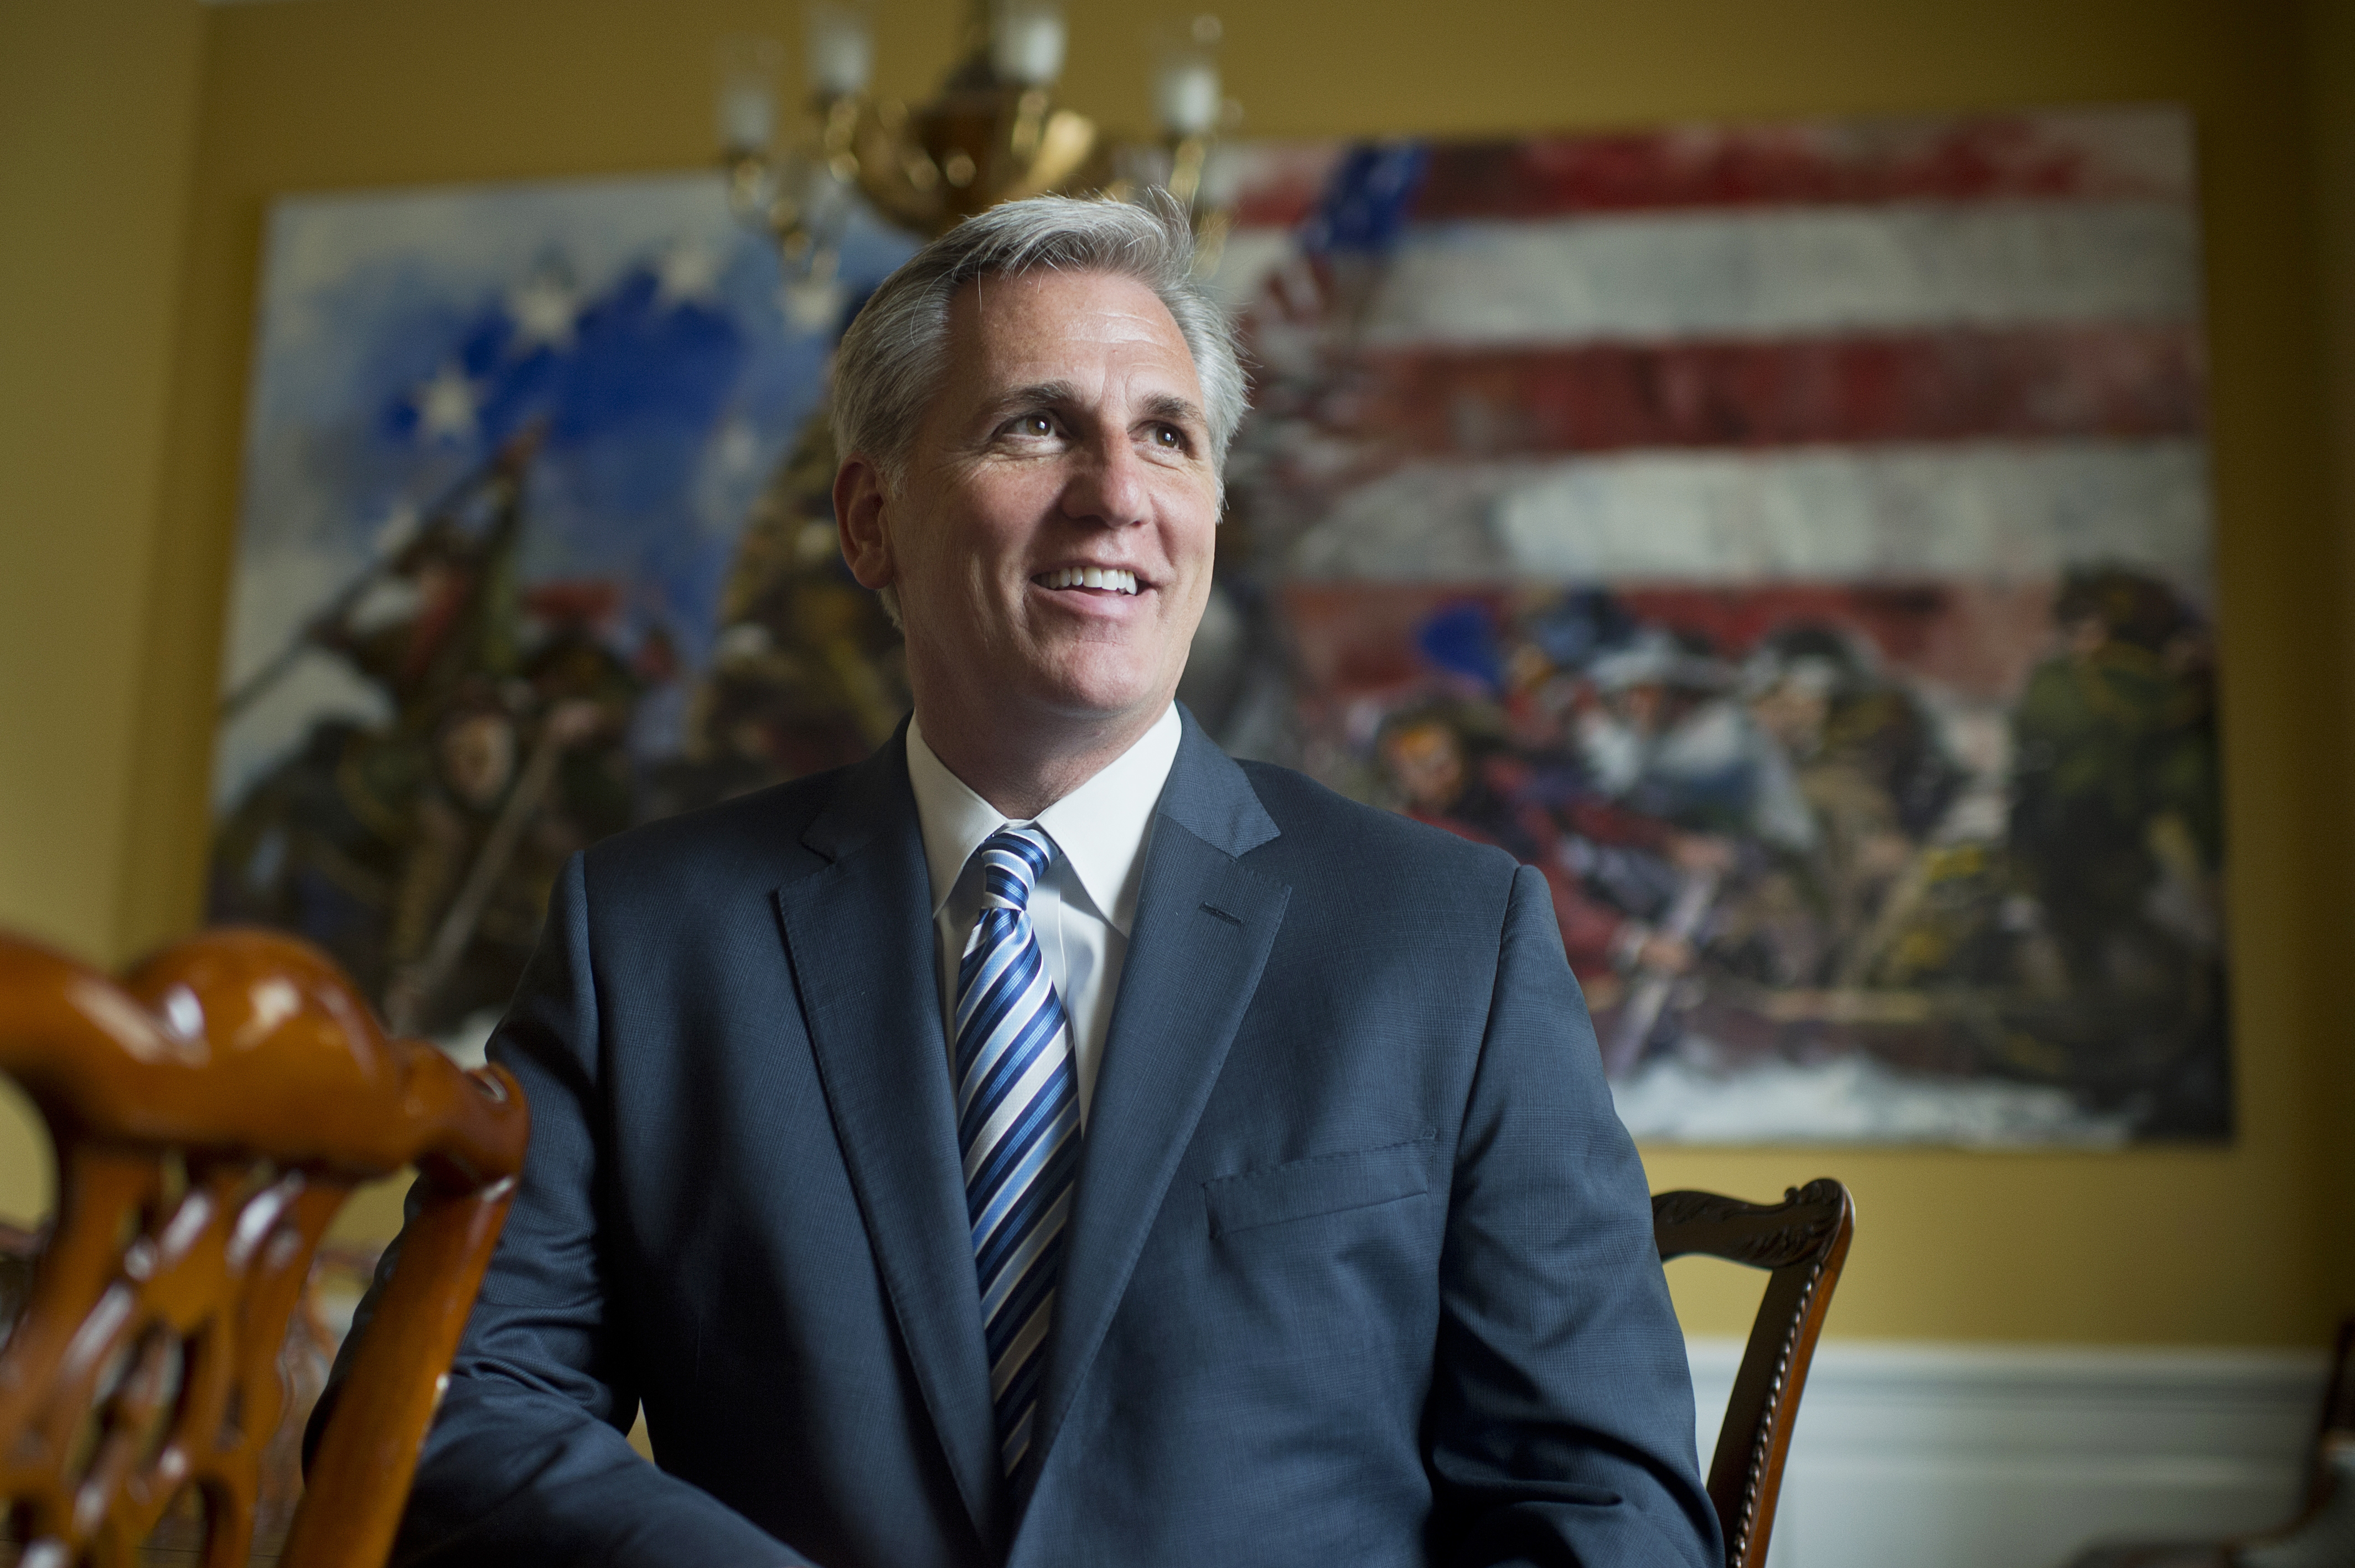 UNITED STATES - JUNE 04: House Majority Leader Kevin McCarthy, D-Calif., is photographed in his Capitol office, June 4, 2015. (Photo By Tom Williams/CQ Roll Call)